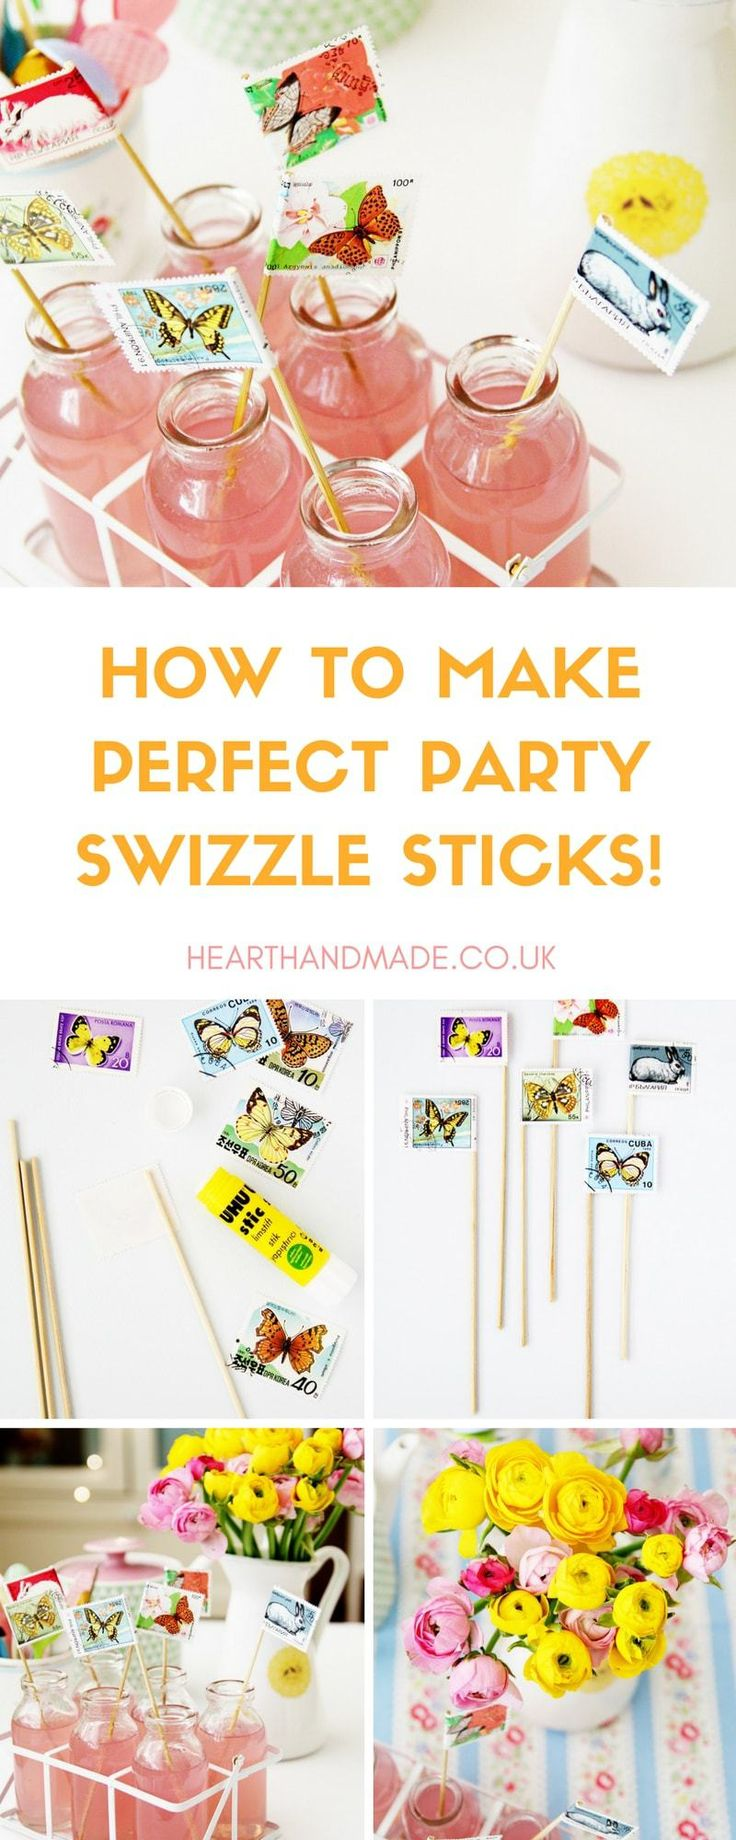 Want to know how to make super quick and easy custom DIY stamp swizzle sticks for your summer DIY party? Simple wooden DIY tutorial/craft that is perfect for cocktails or soft drinks at a summer party, wedding, picnic or any holidays.